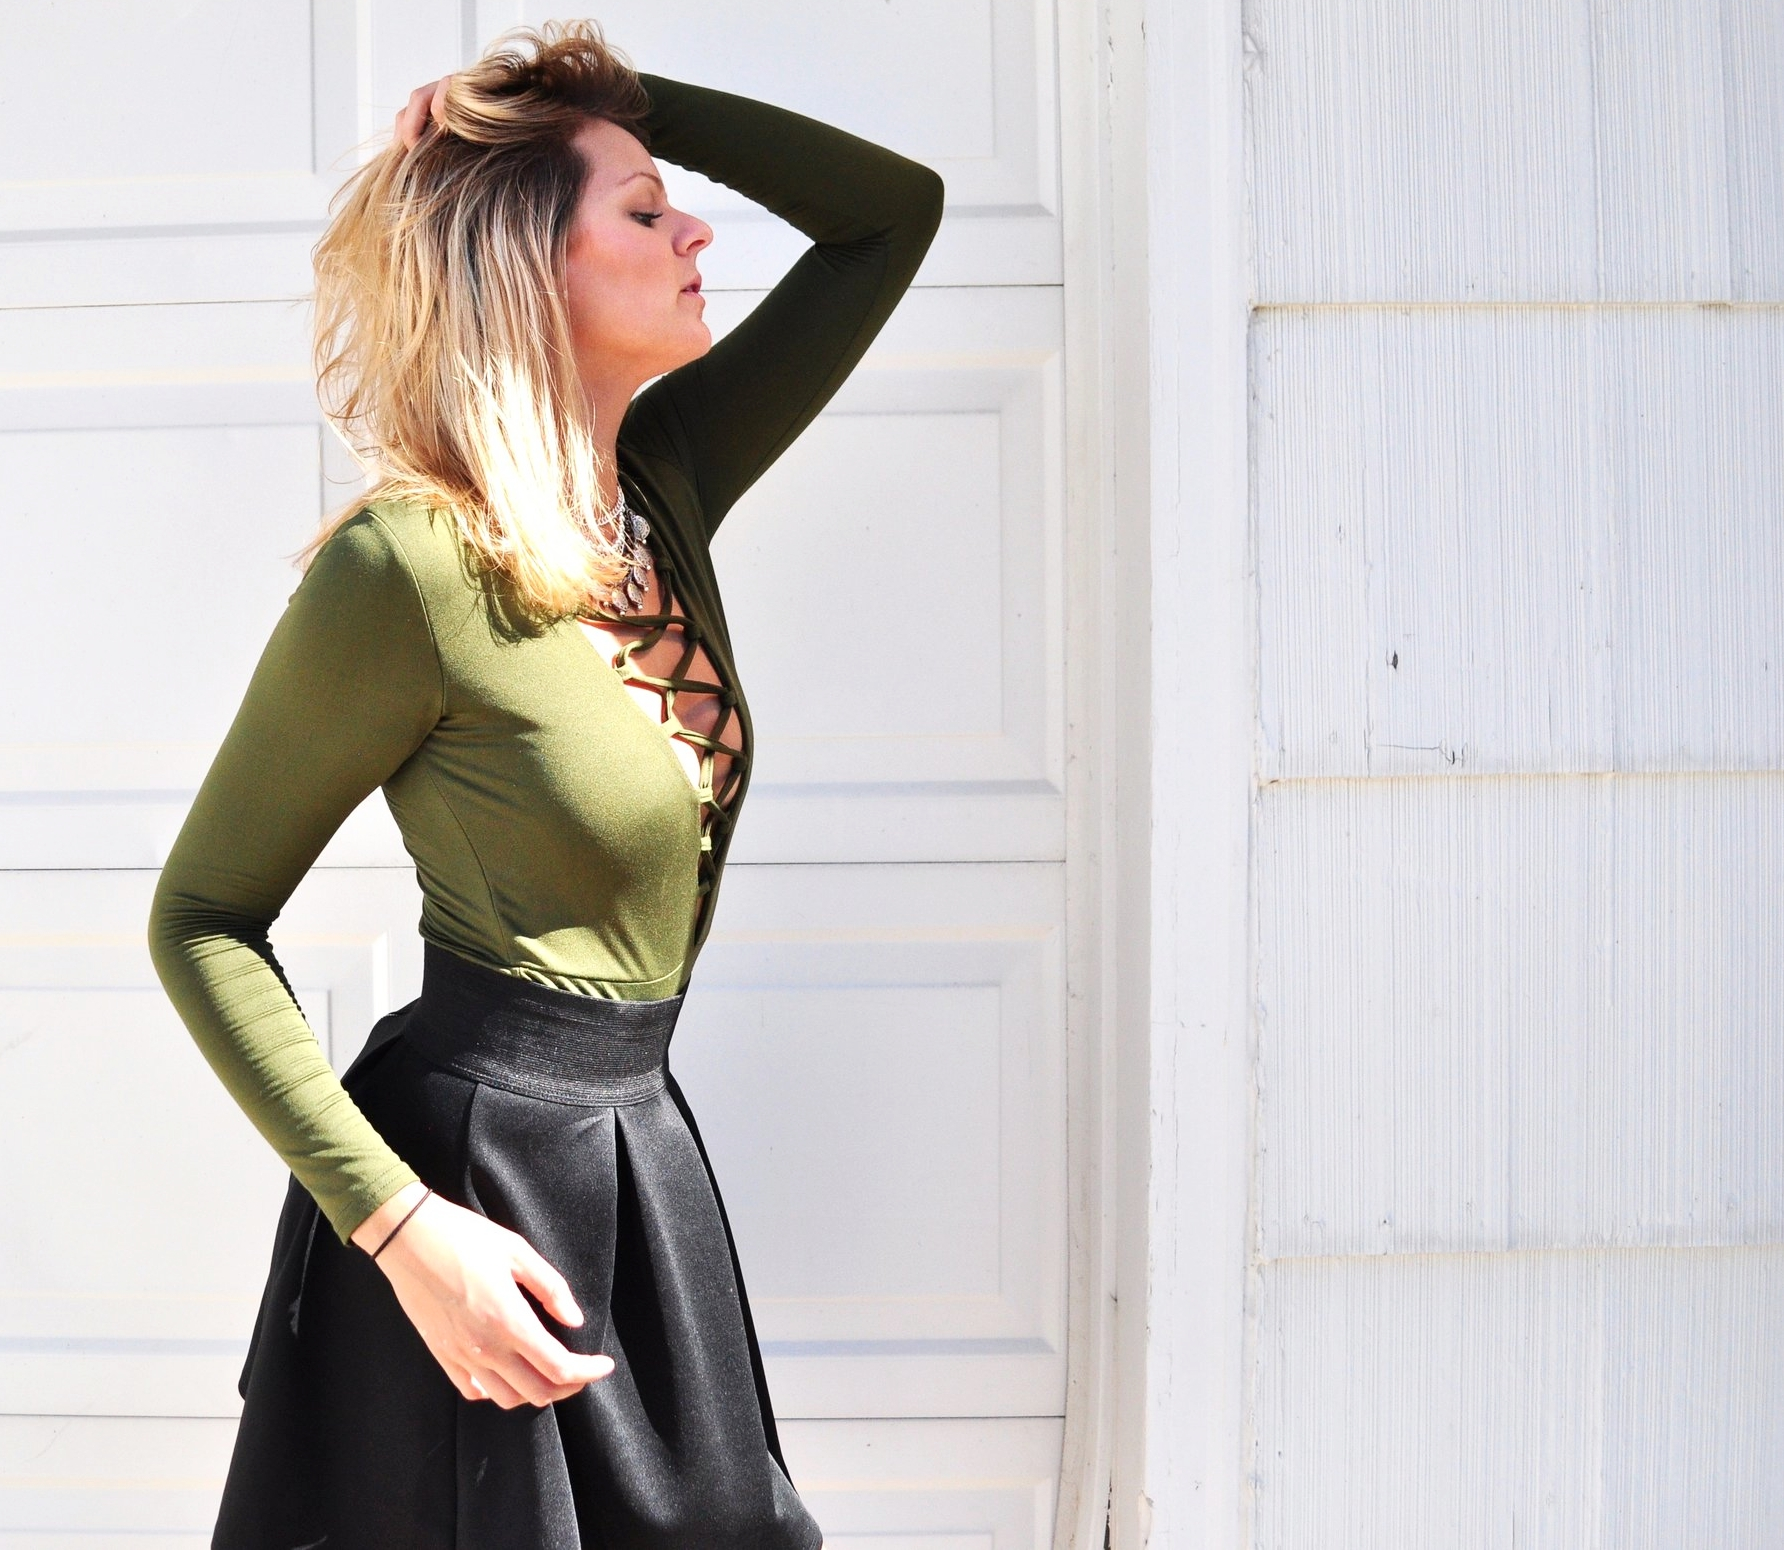 queen city, queen city gypsy, indie twenty, silver sun, indie jewelry, buffalo local made jewelry, green lace up bodysuit, lace up bodysuit, sexy bodysuit, blonde in buffalo, blonde hair blogger, buffalo blogging network, buffalo blogger